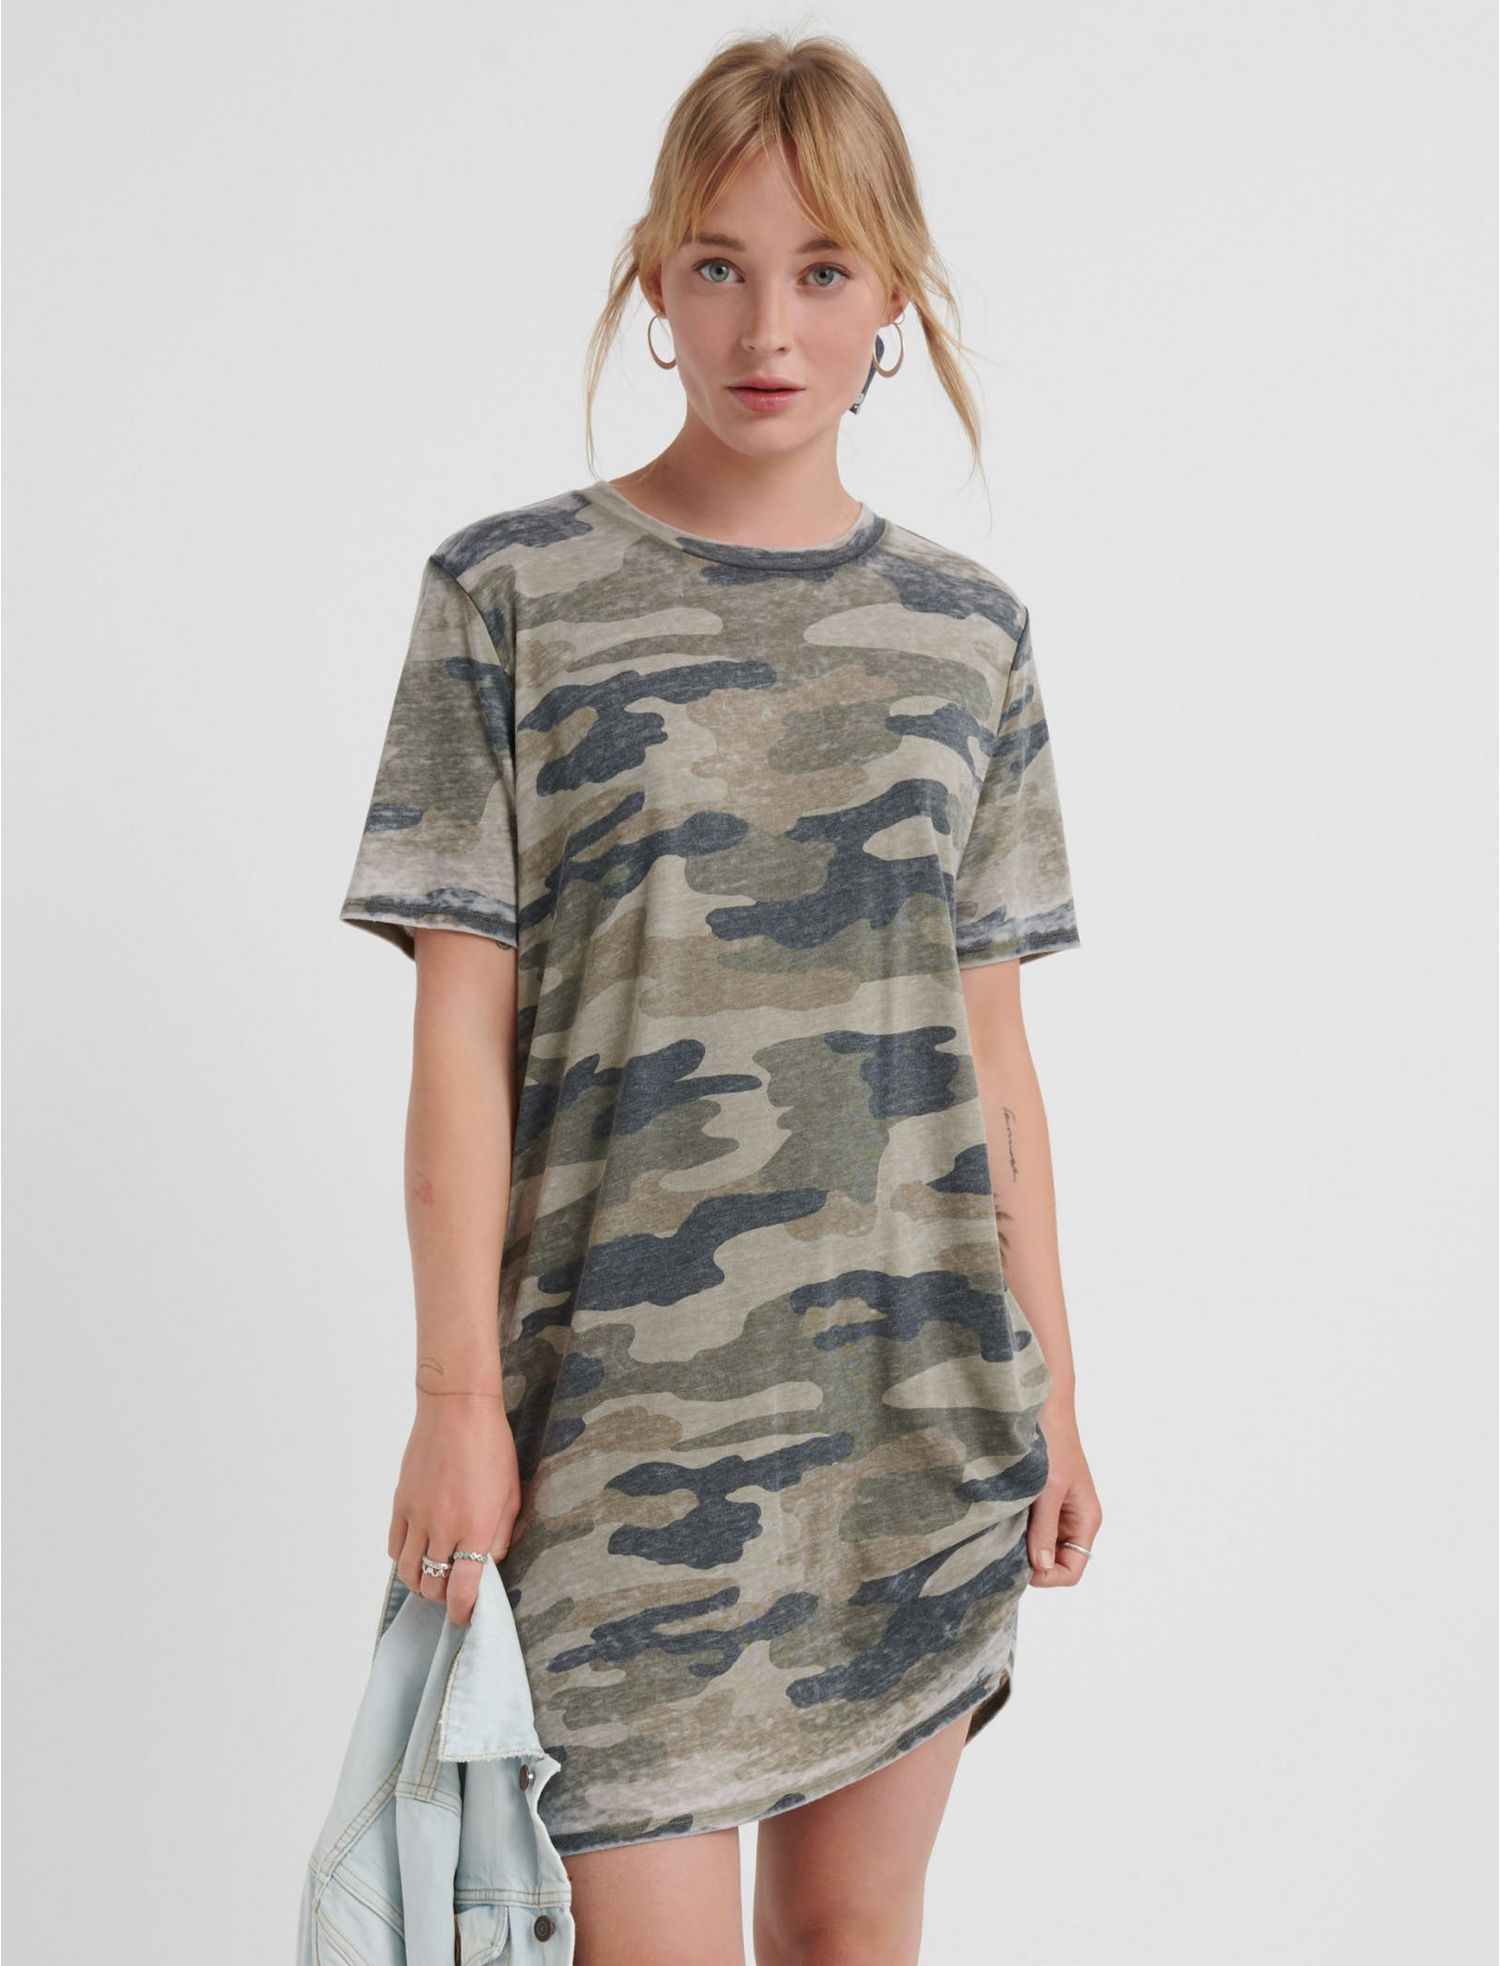 THE-SUMMER-TEE-DRESS-340.jpeg